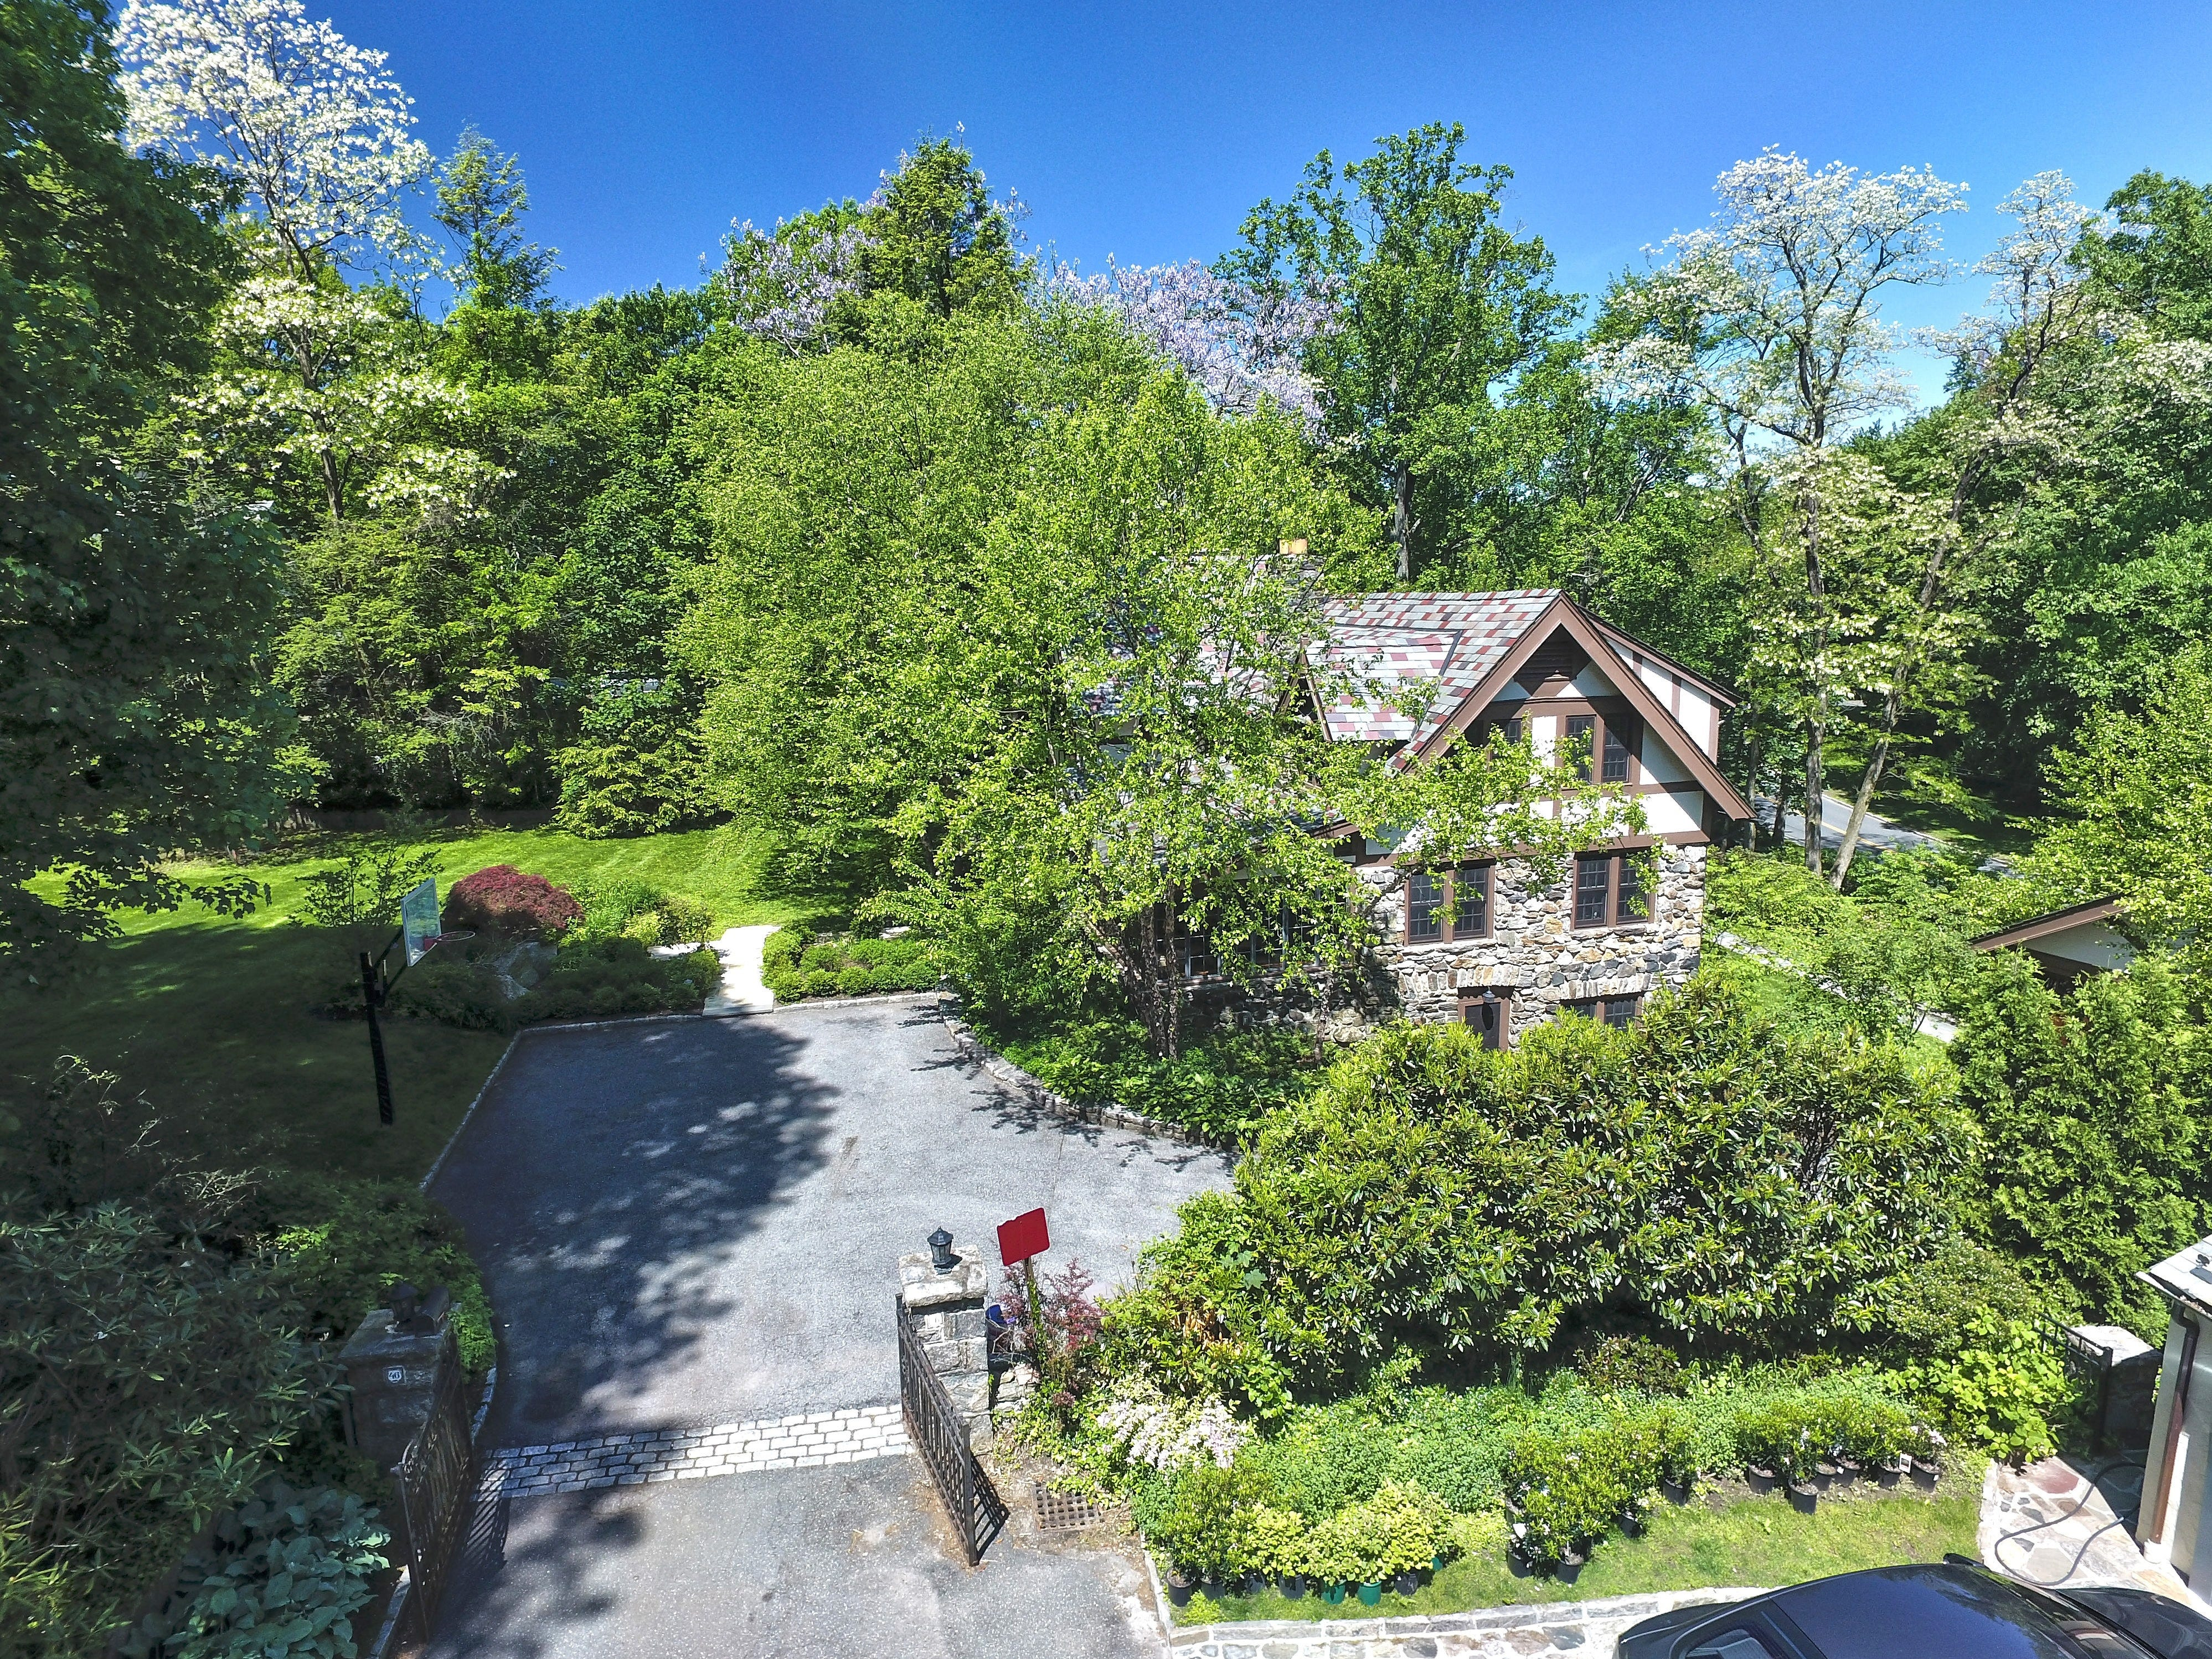 Bugsy Siegel reportedly owned and lived in this Scarsdale home in the 1920s.